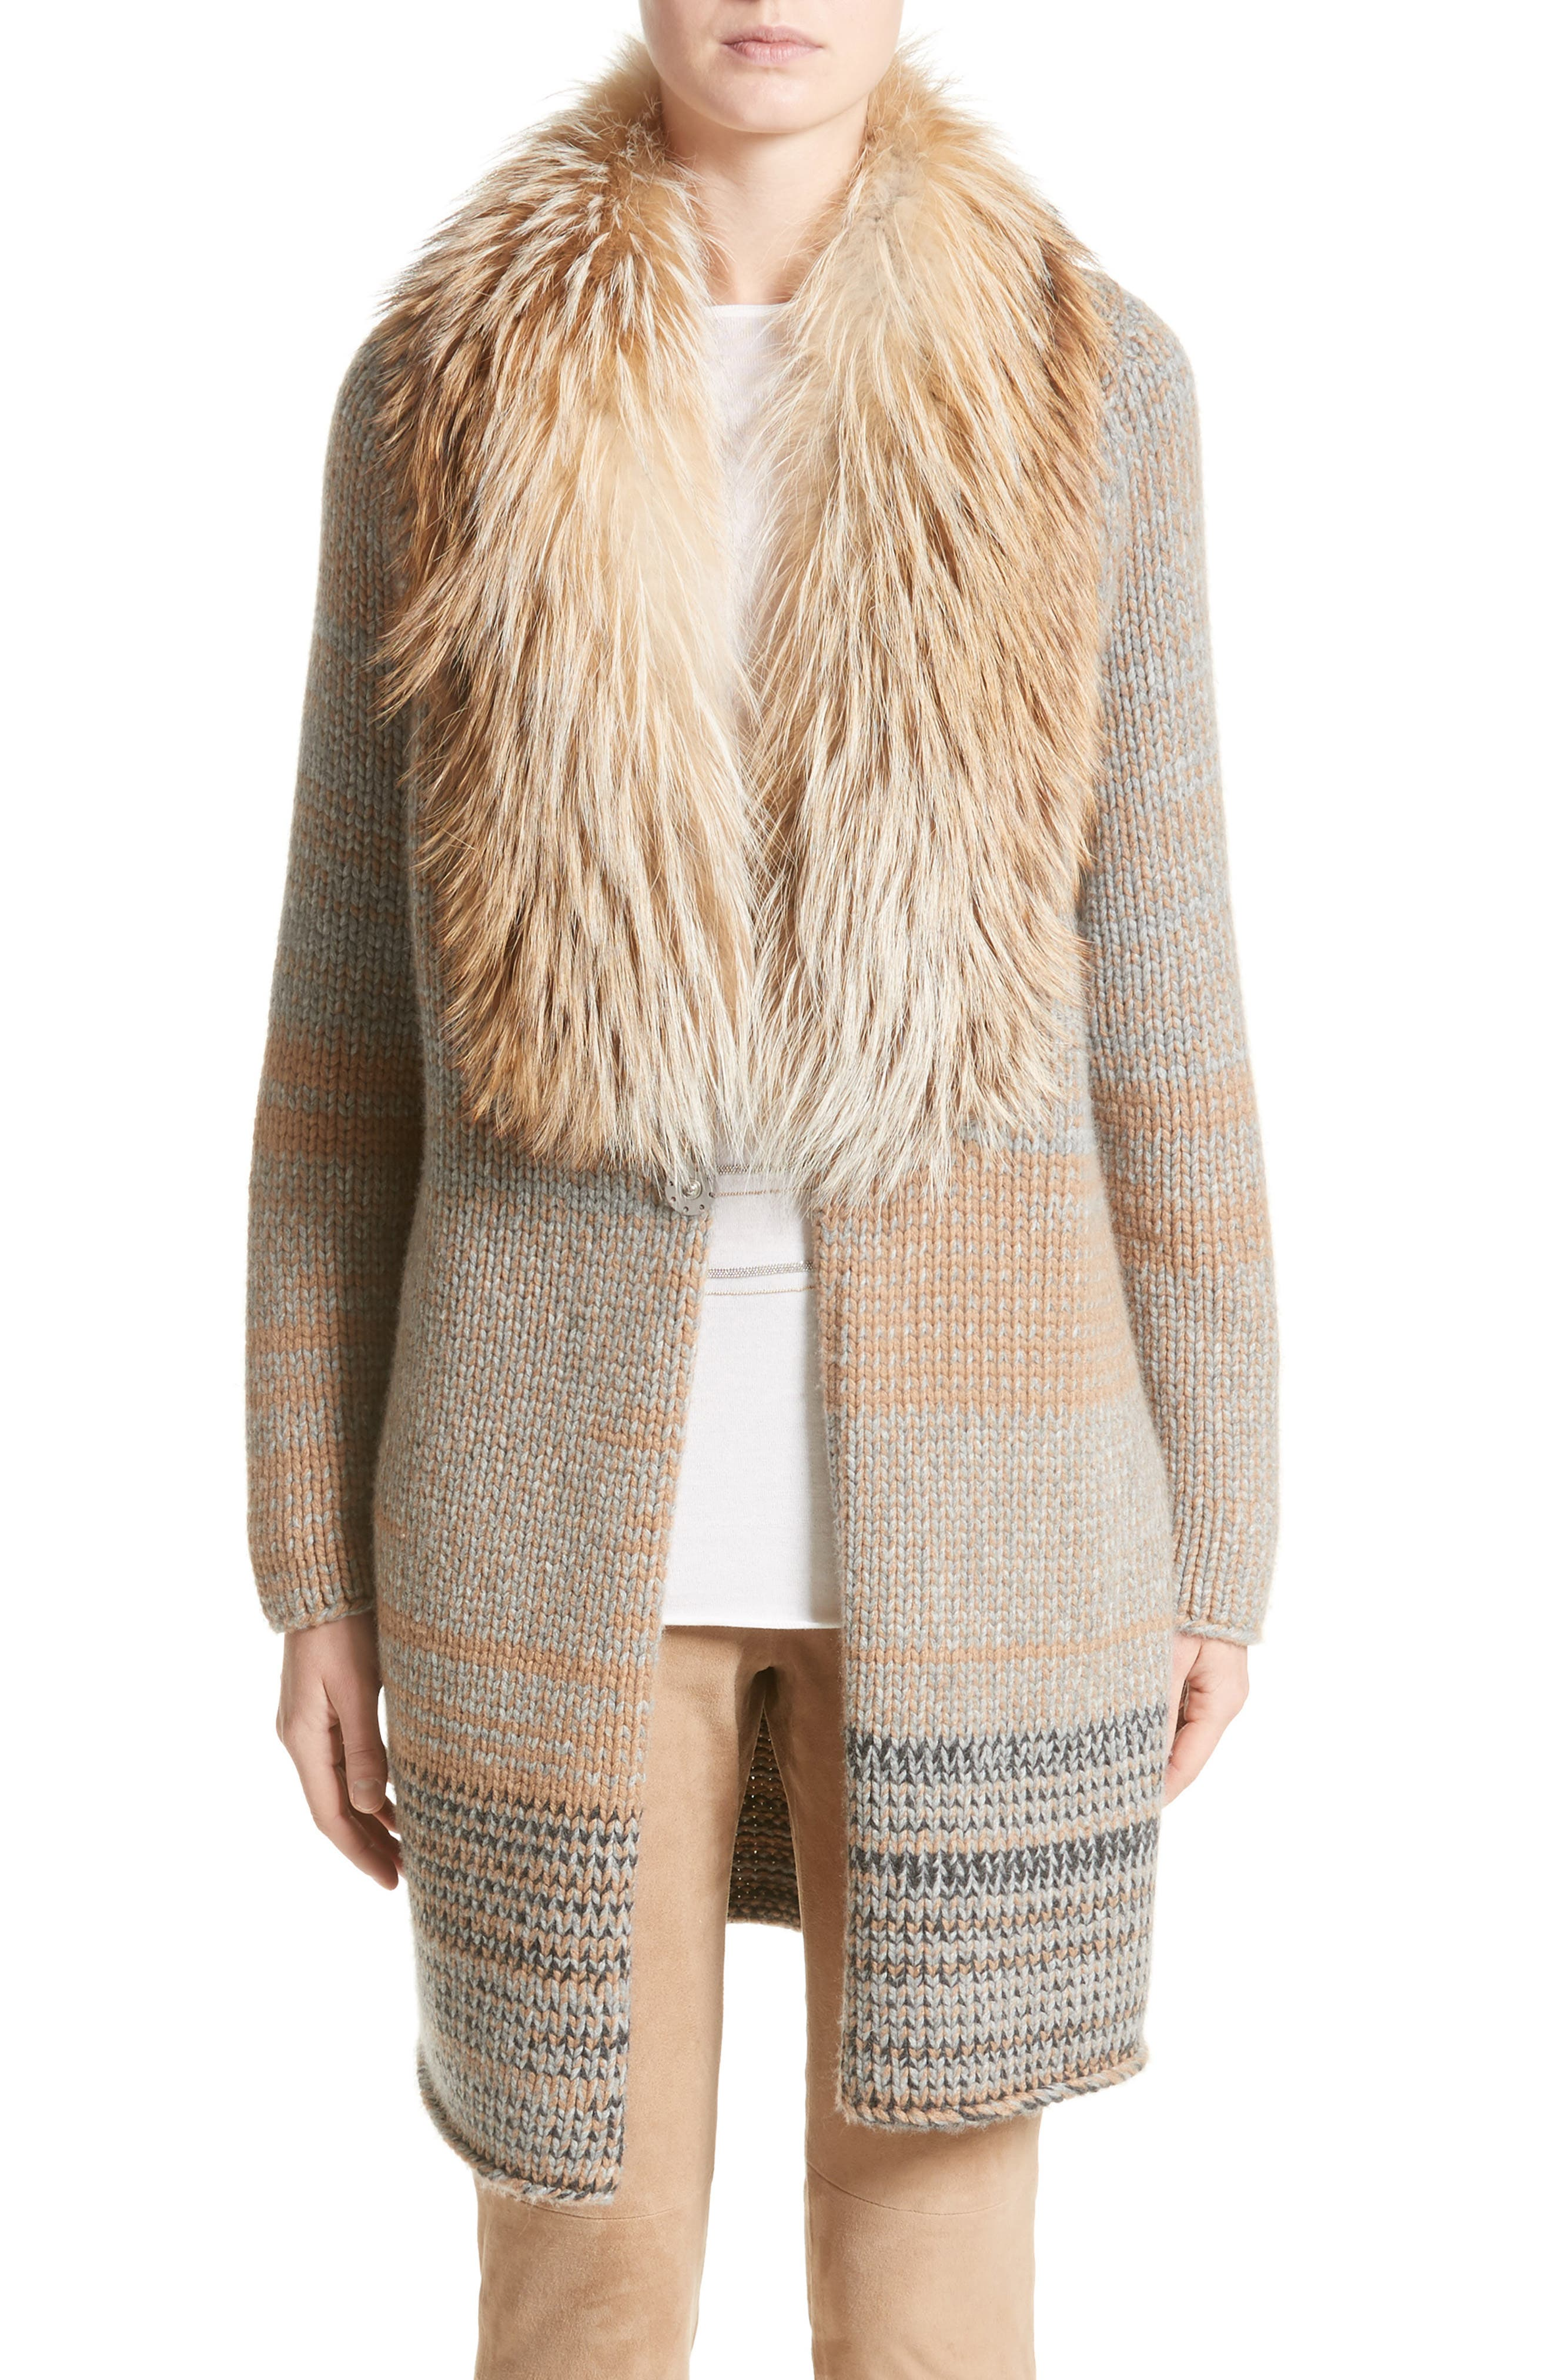 Cashmere Cardigan with Removable Genuine Fox Fur Collar,                             Main thumbnail 1, color,                             Camel / Grey Multi